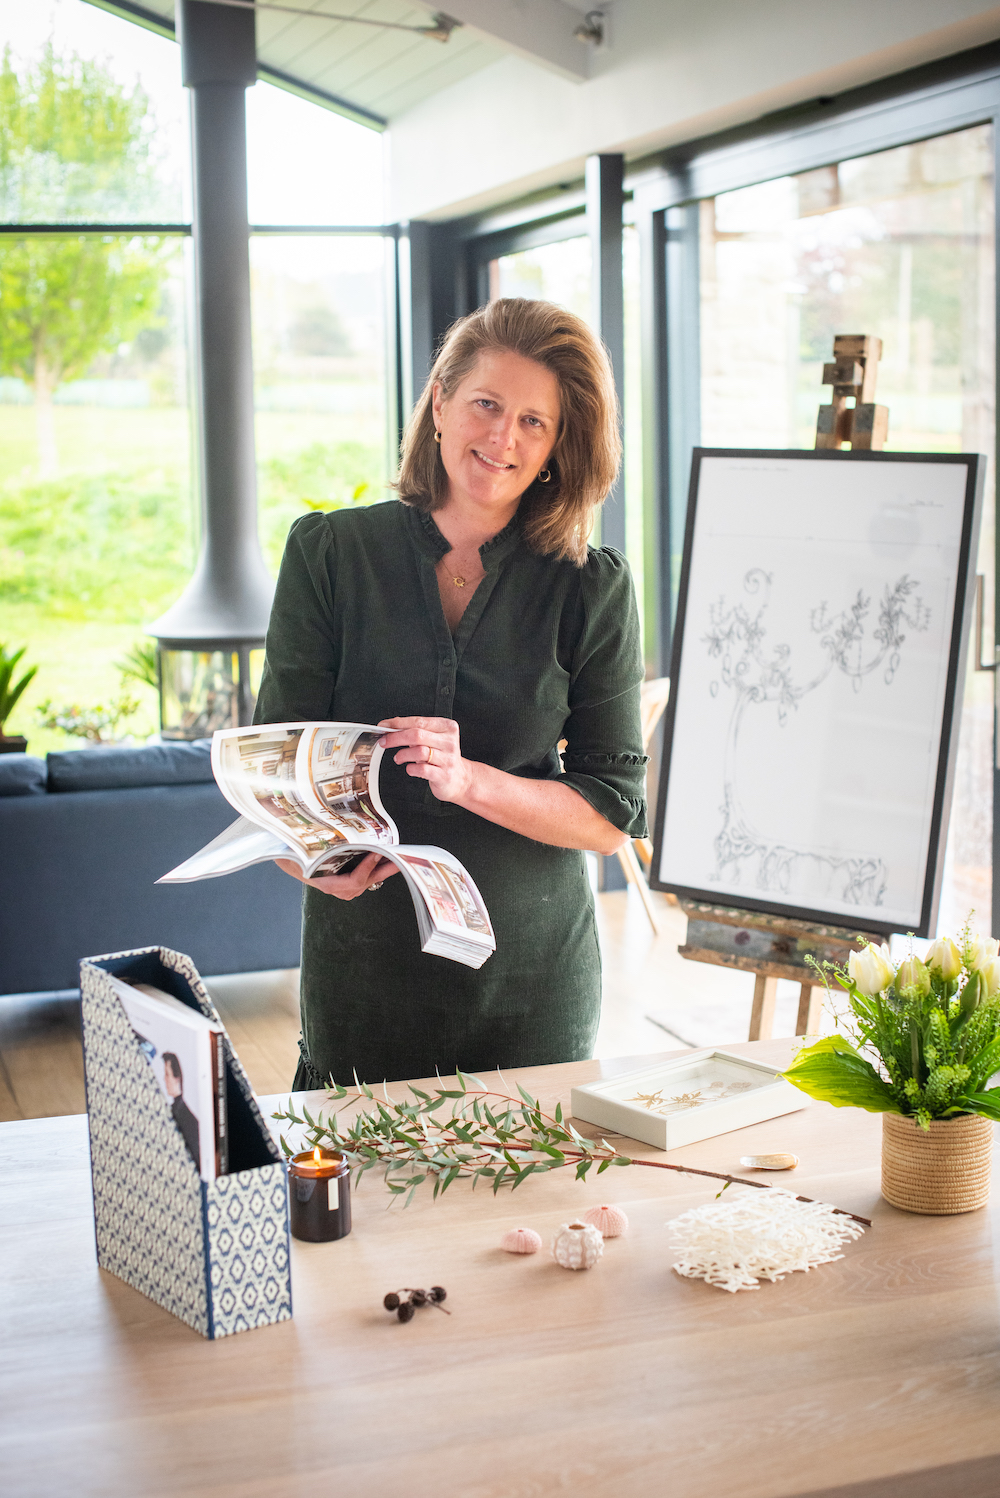 Charlotte Bowater_Guilded by Charlotte Bowater_gathering inspiration for a bespoke commission